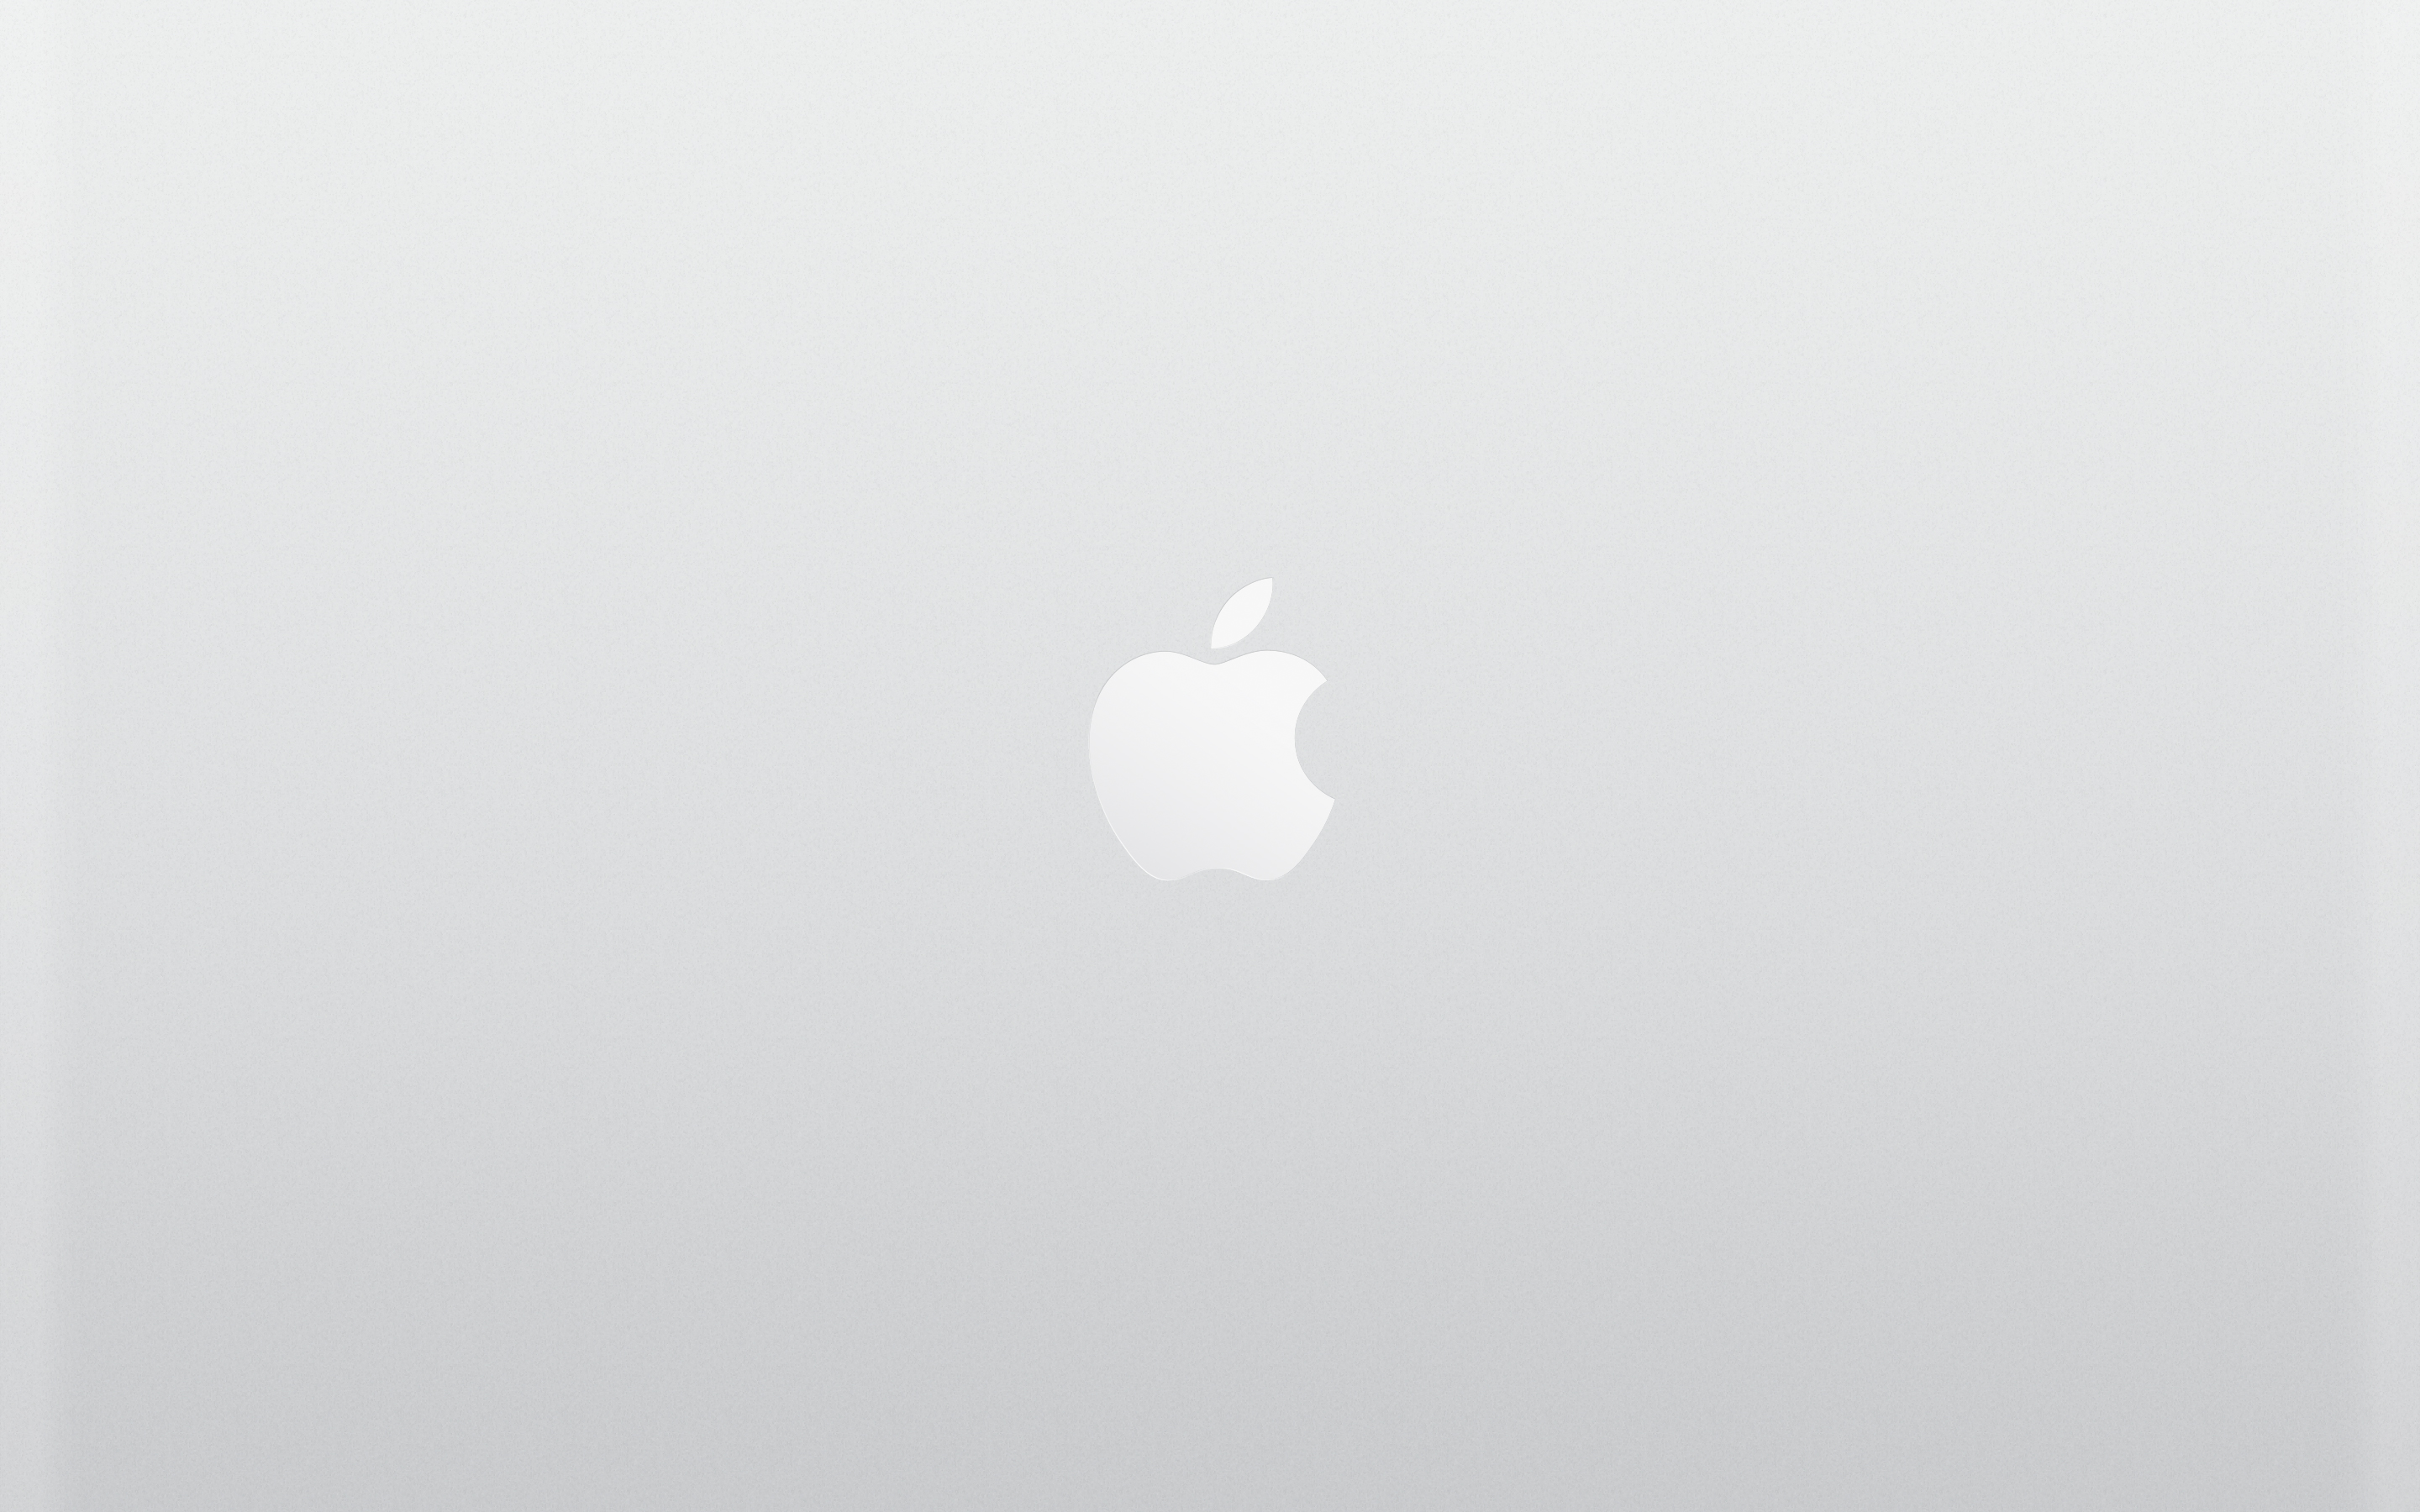 Ipad Iphone Hd Wallpaper Free: New Macbook Wallpapers For IPad, IPhone, And Desktop